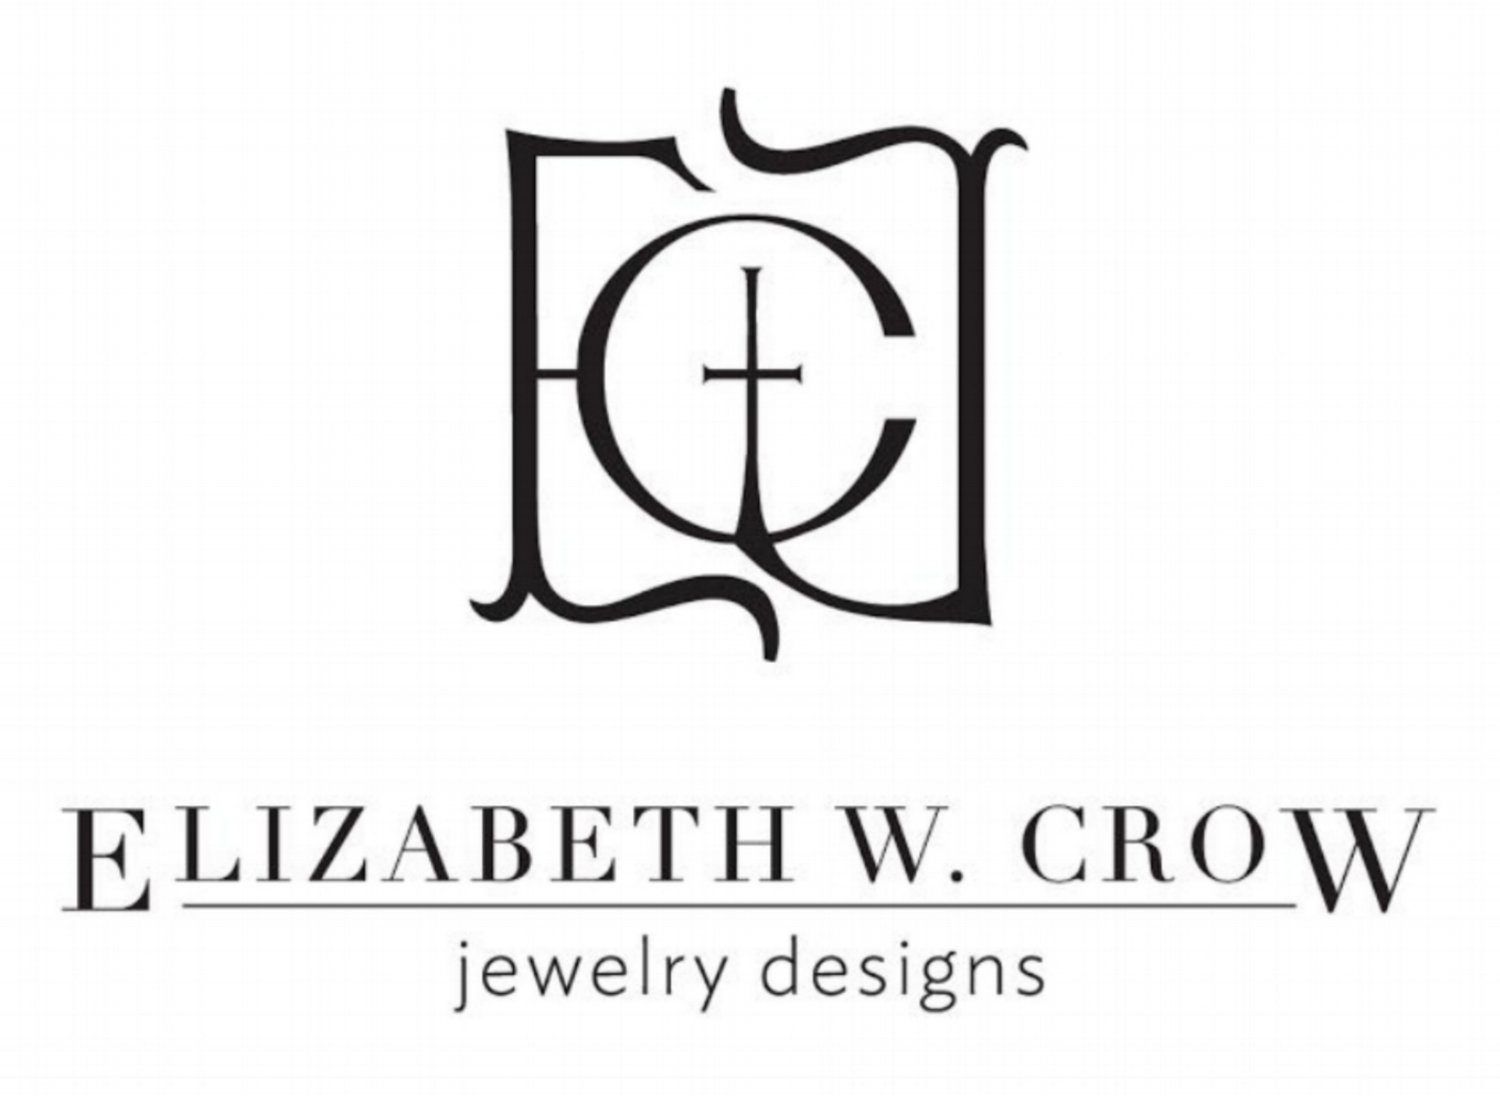 Elizabeth W. Crow Jewelry Designs